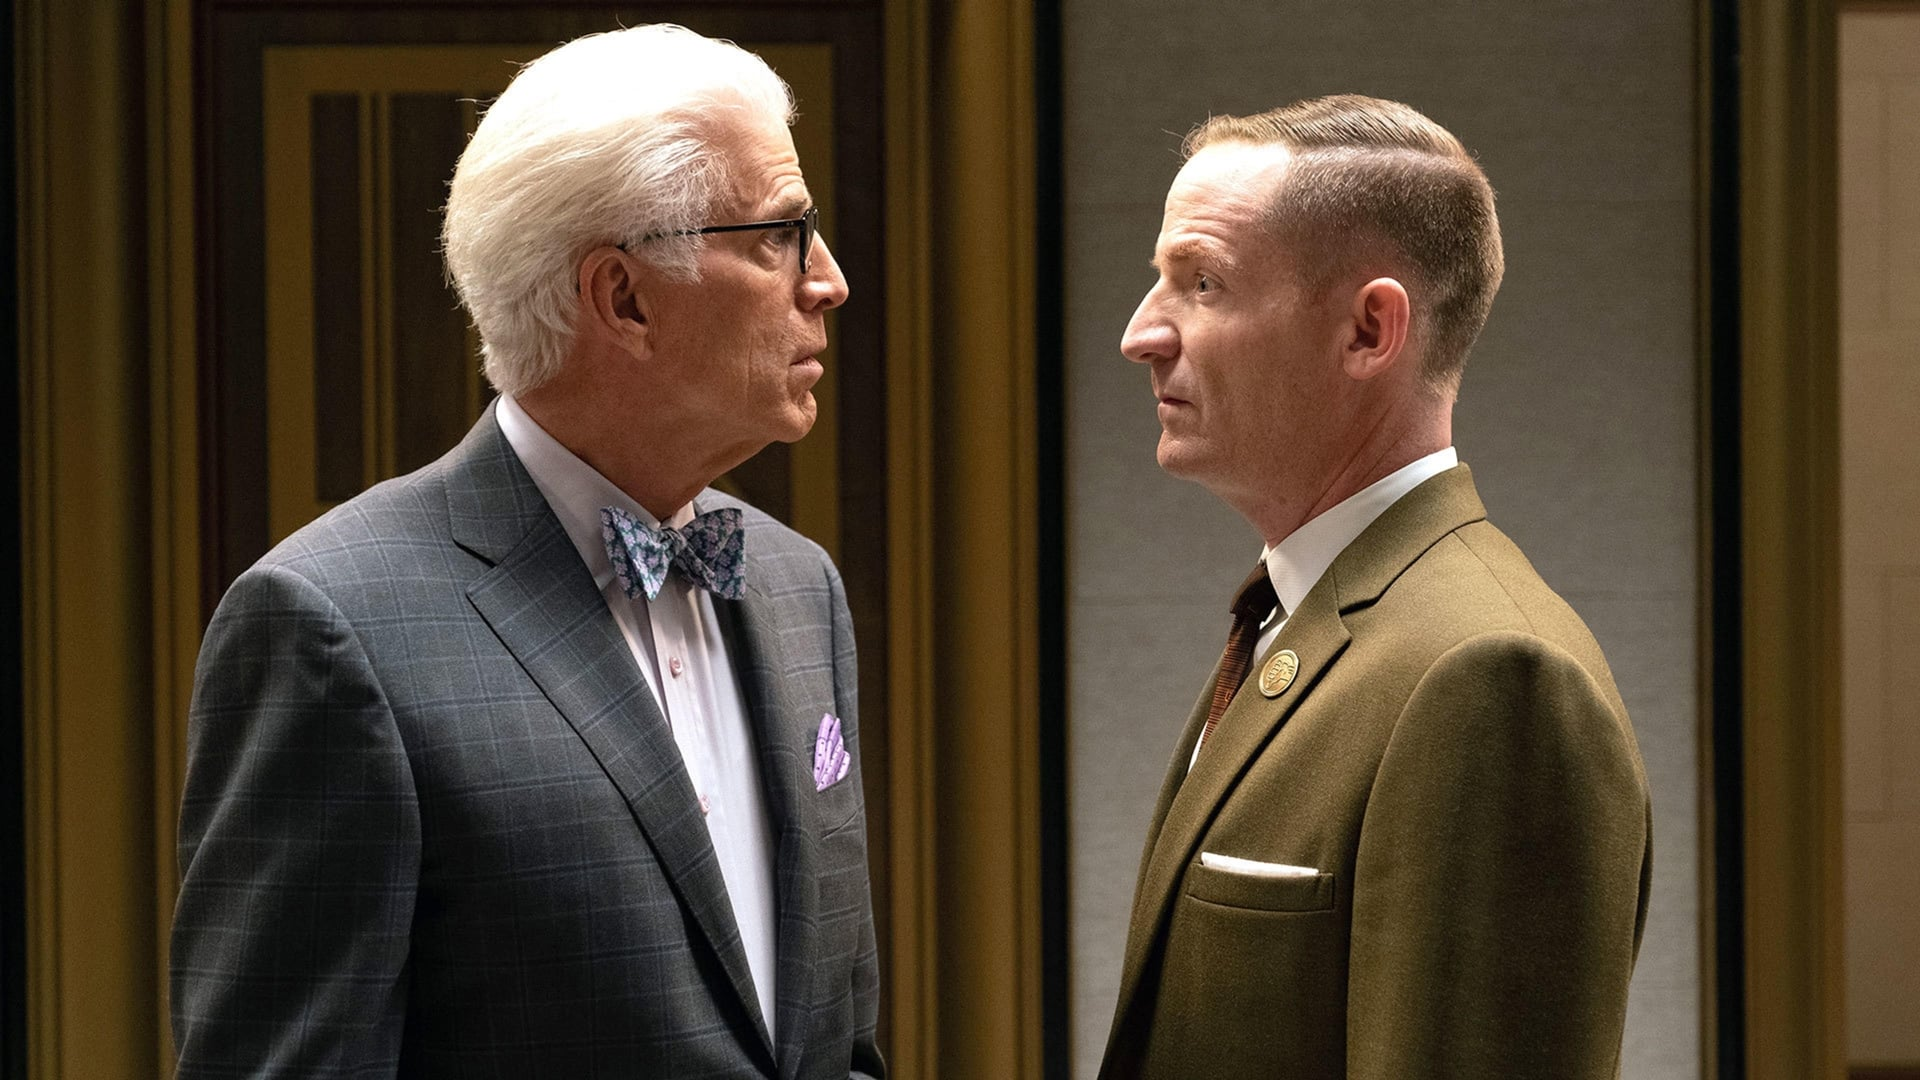 The Good Place - Season 4 Episode 8 : The Funeral to End All Funerals